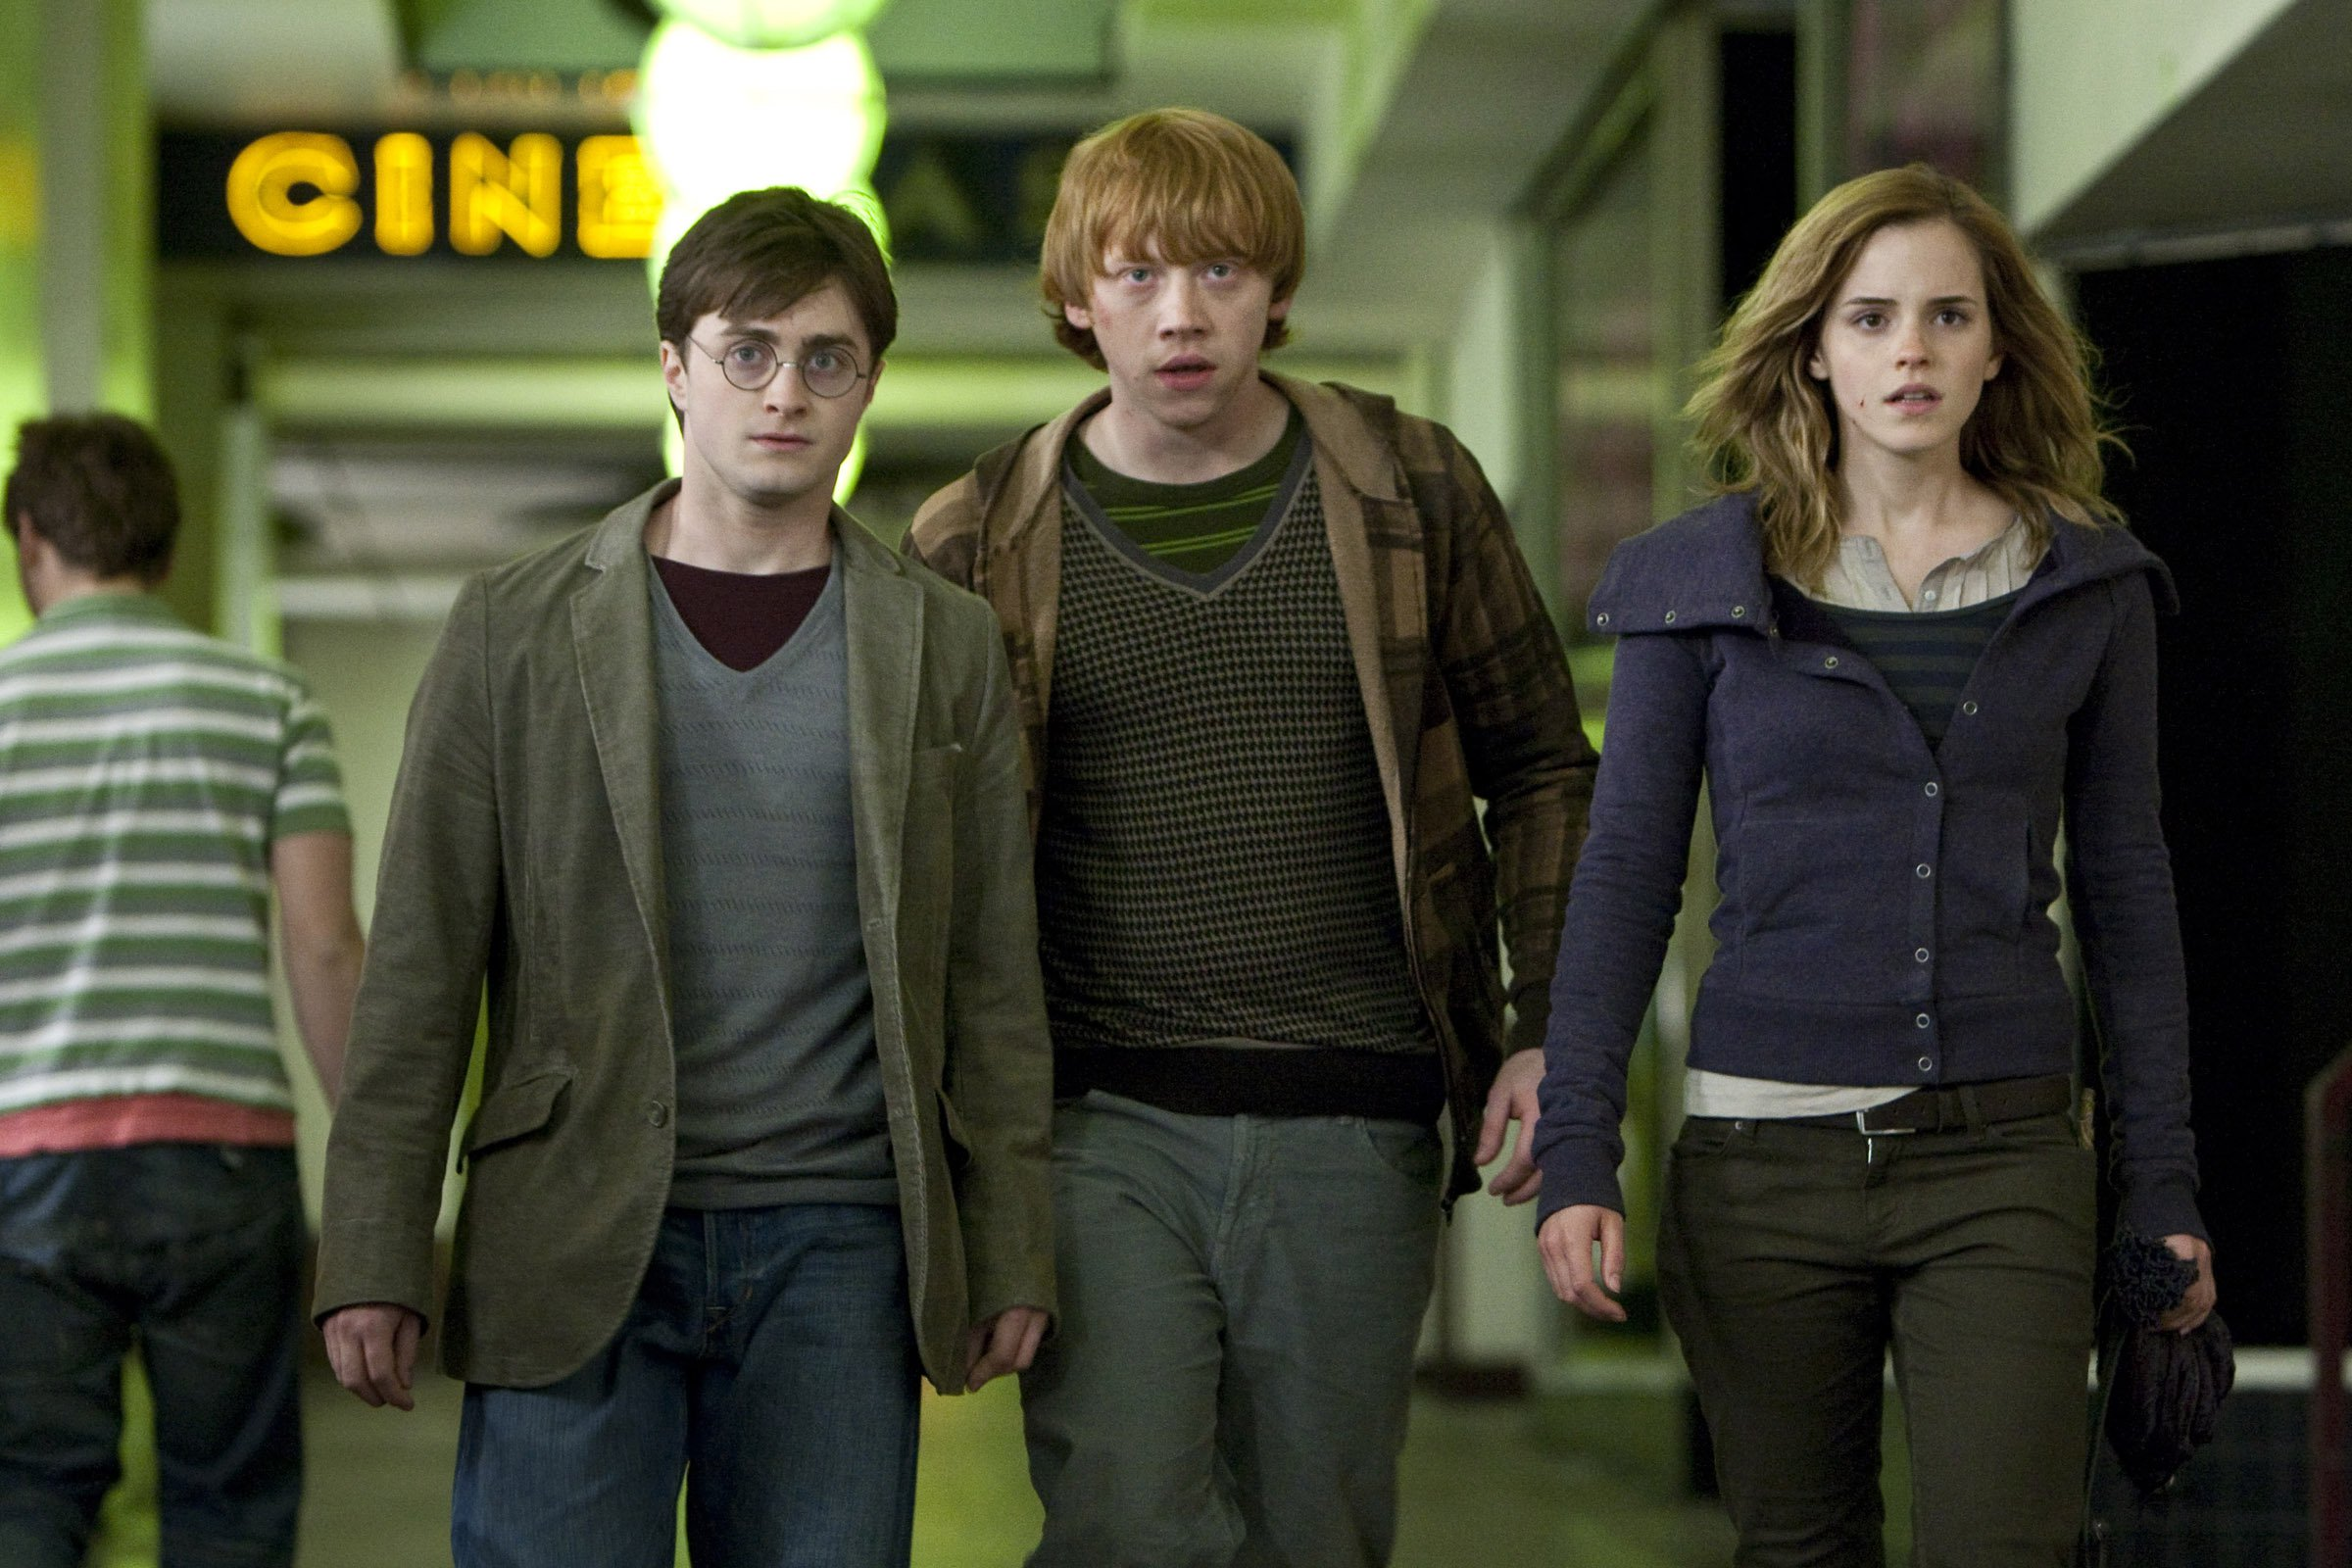 Harry Potter tickets are 40% off this Black Friday